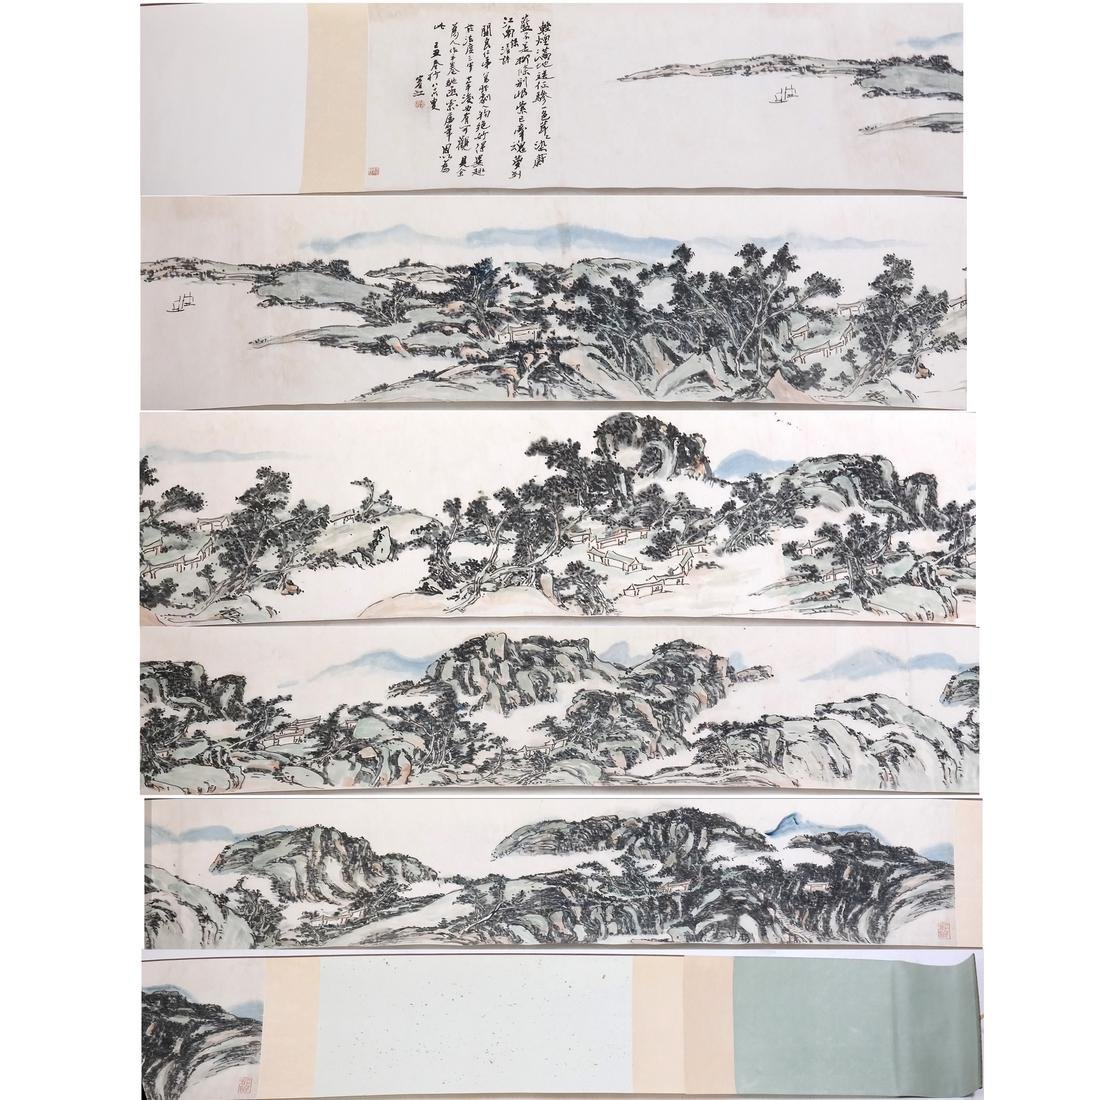 ASIAN: ATTRIBUTED TO HUANG BINHONG (20TH CENTURY)